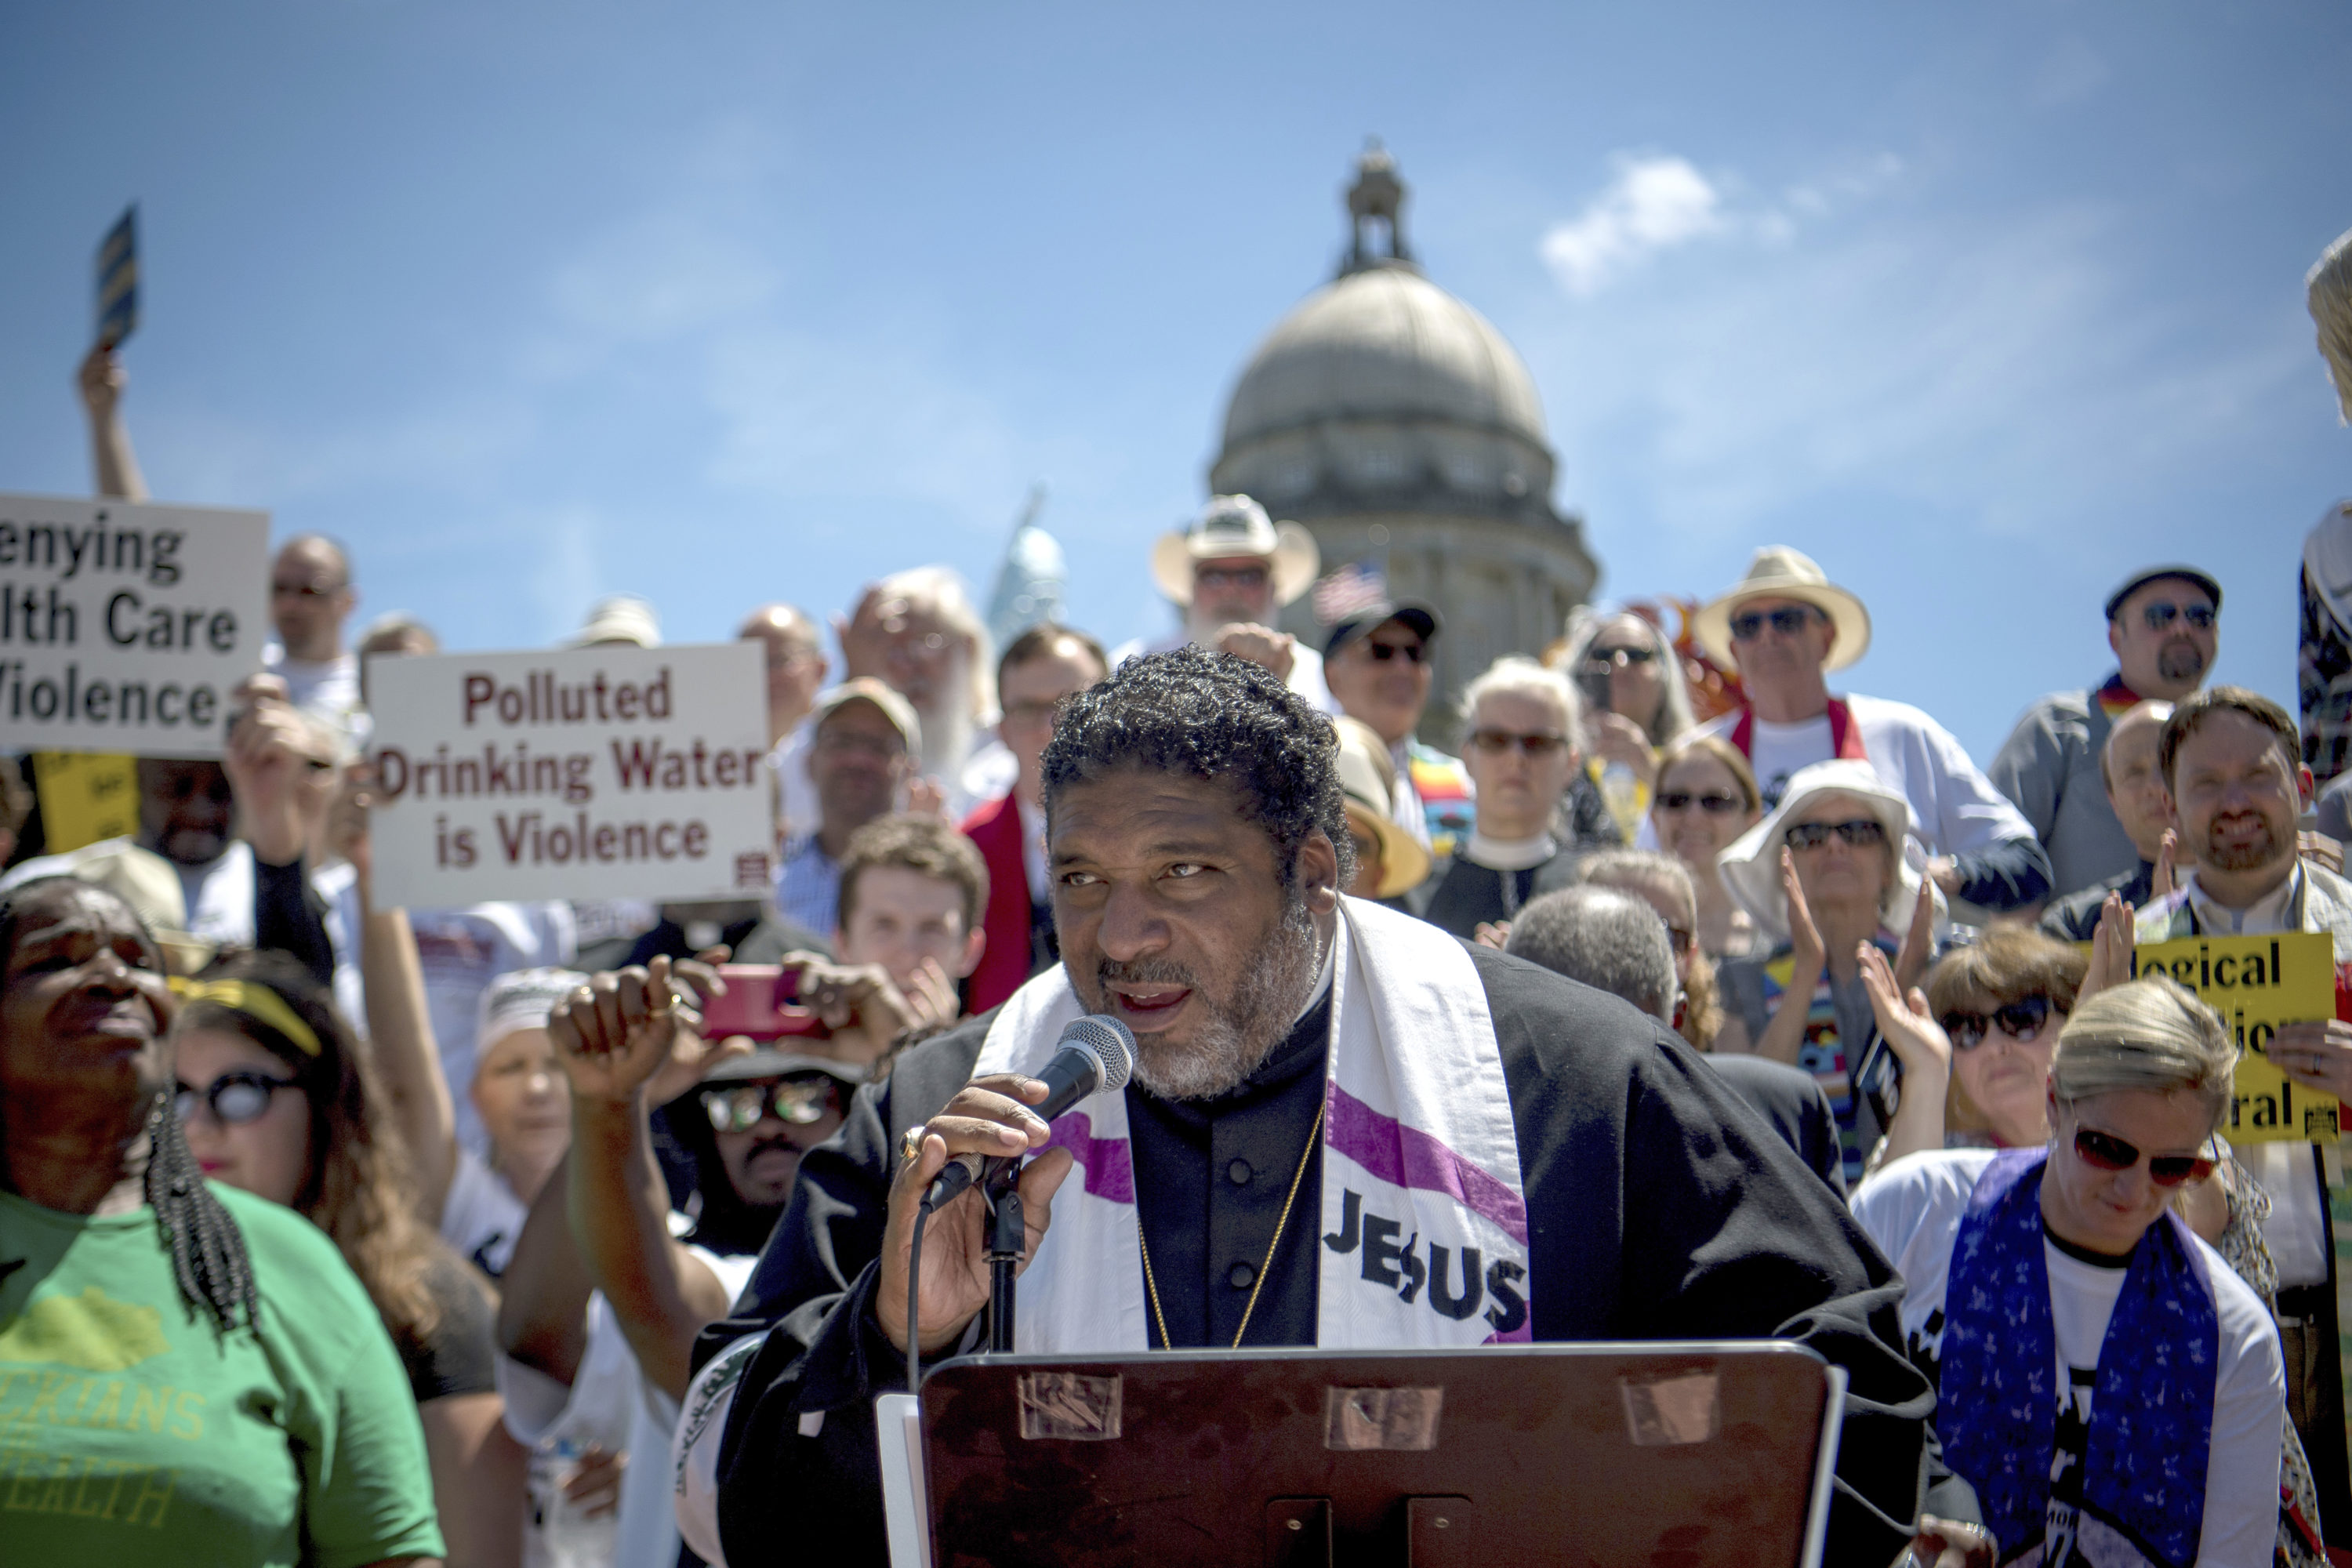 Reverend William J. Barber speaks to protesters gathered during a protest organized by Kentucky Poor People's Campaign in Frankfort, Ky., in 2018. (Bryan Woolston/AP)